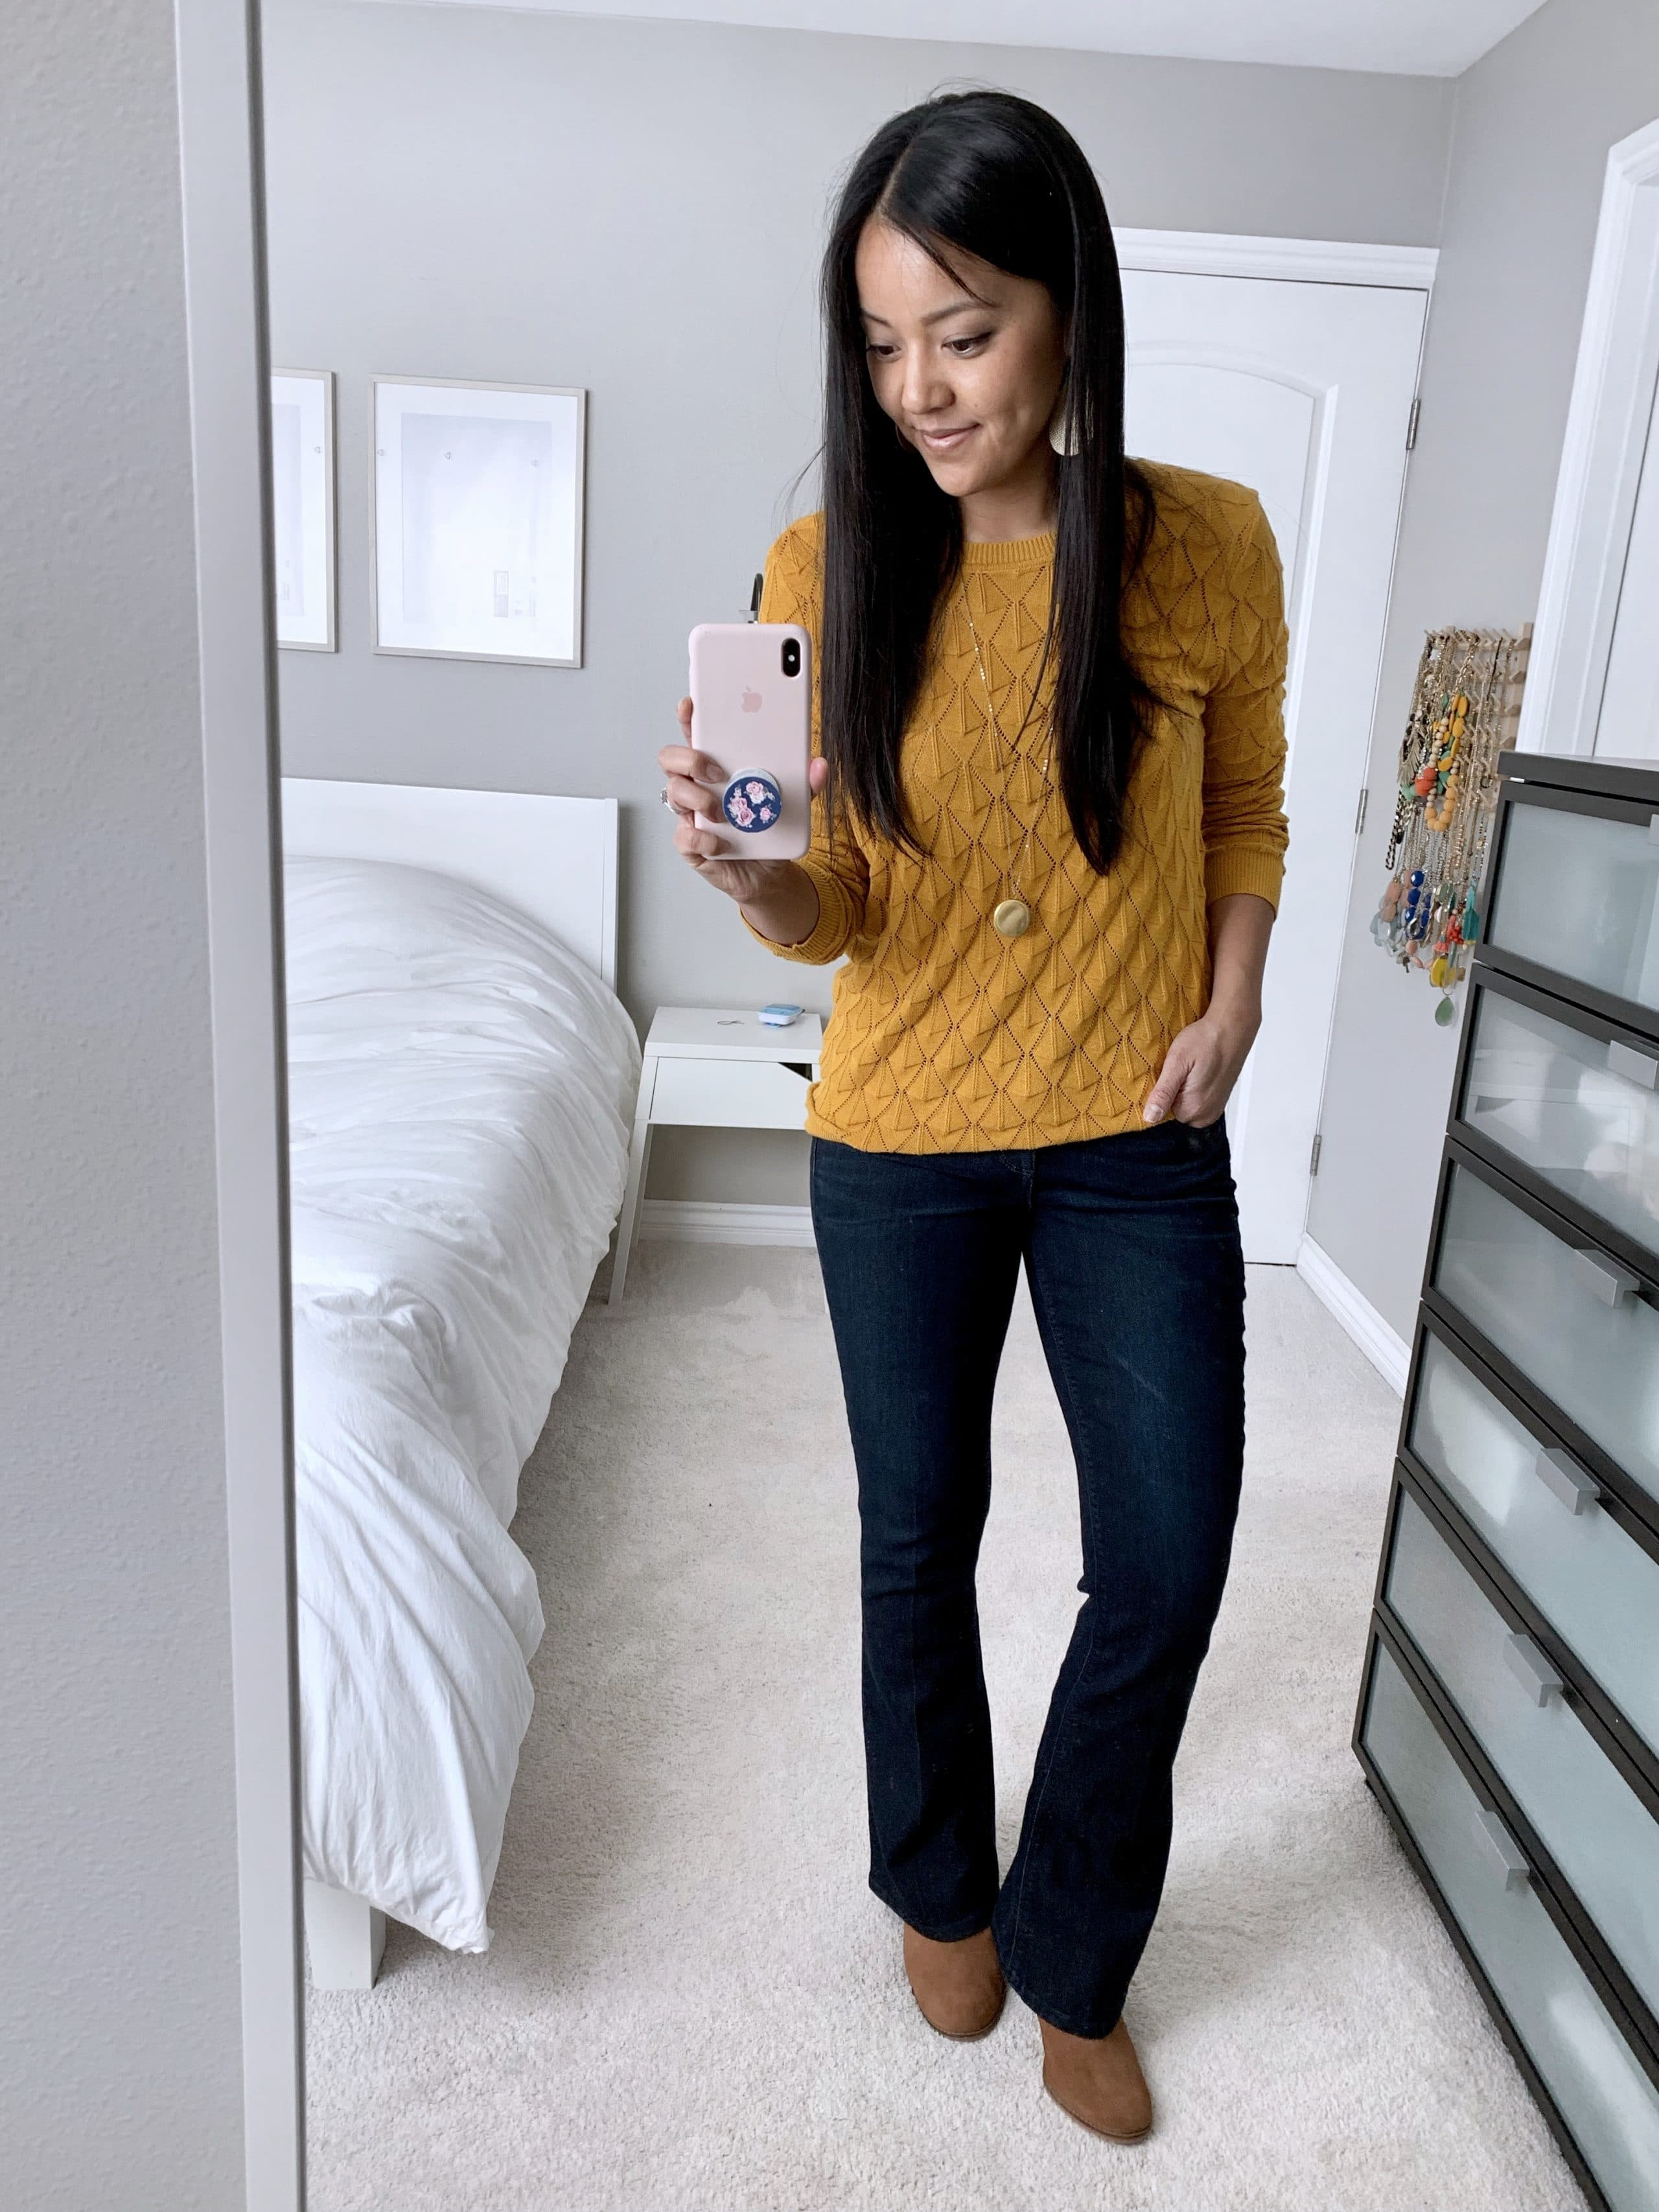 Bootcut Jeans Outfit for Fall with Mustard Yellow Sweater